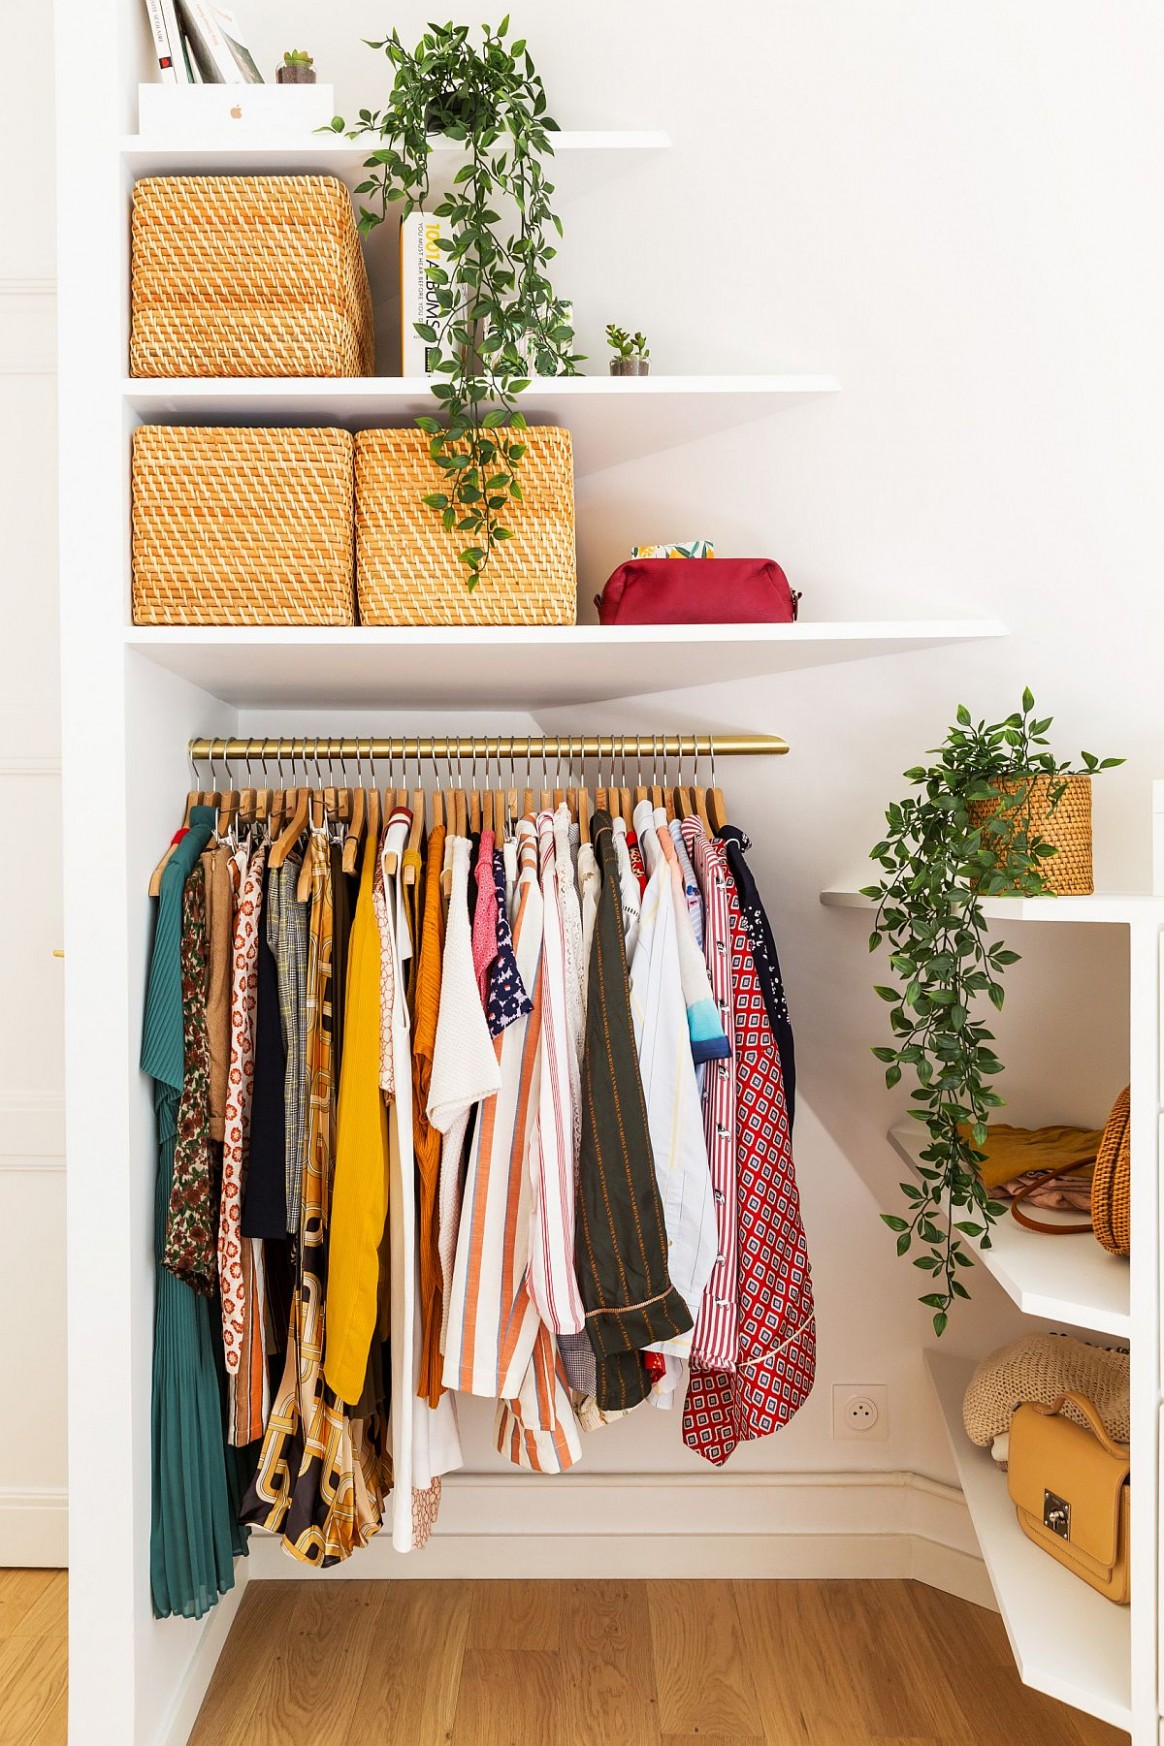 12 Small Apartment Closet Ideas that Save Space with Innovative Design - Closet Ideas For Small Bedrooms